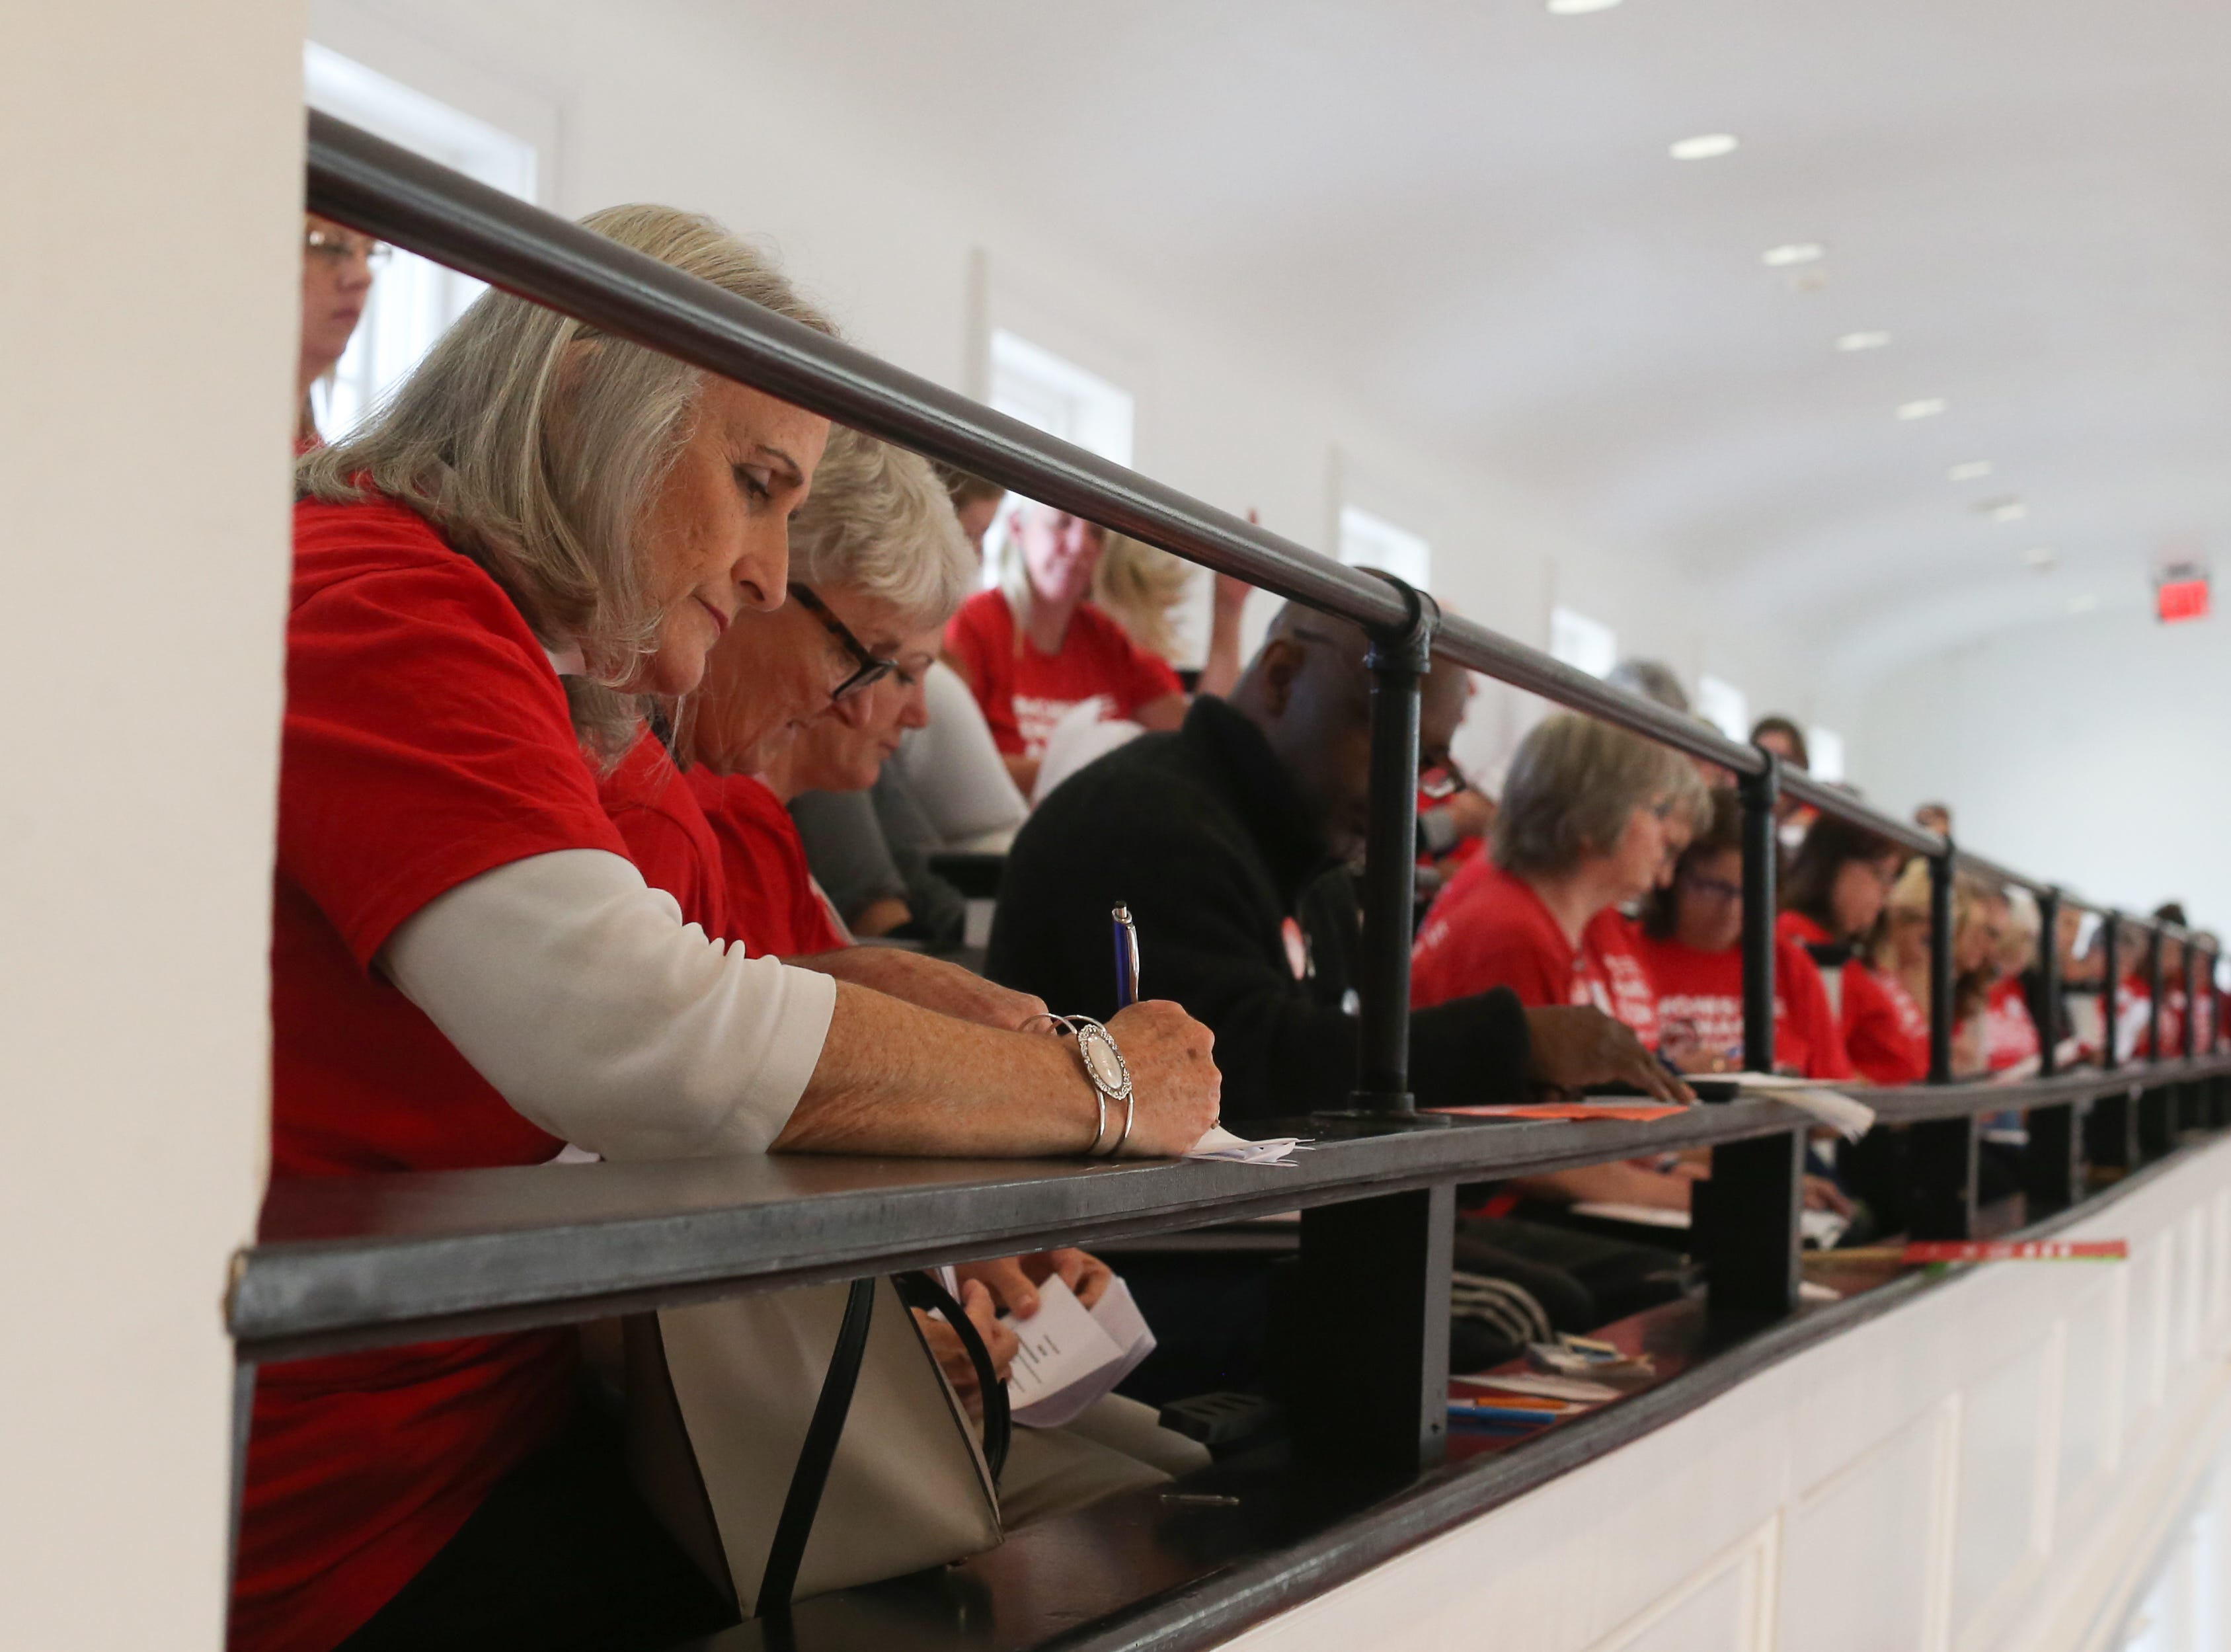 Lynn Janasiewicz, a Tallahassee member of Moms Demand Action, takes notes as leaders go over guidelines for over 500 members of Moms Demand Action to meet with lawmakers at the Capitol Wednesday, Feb. 6, 2019.